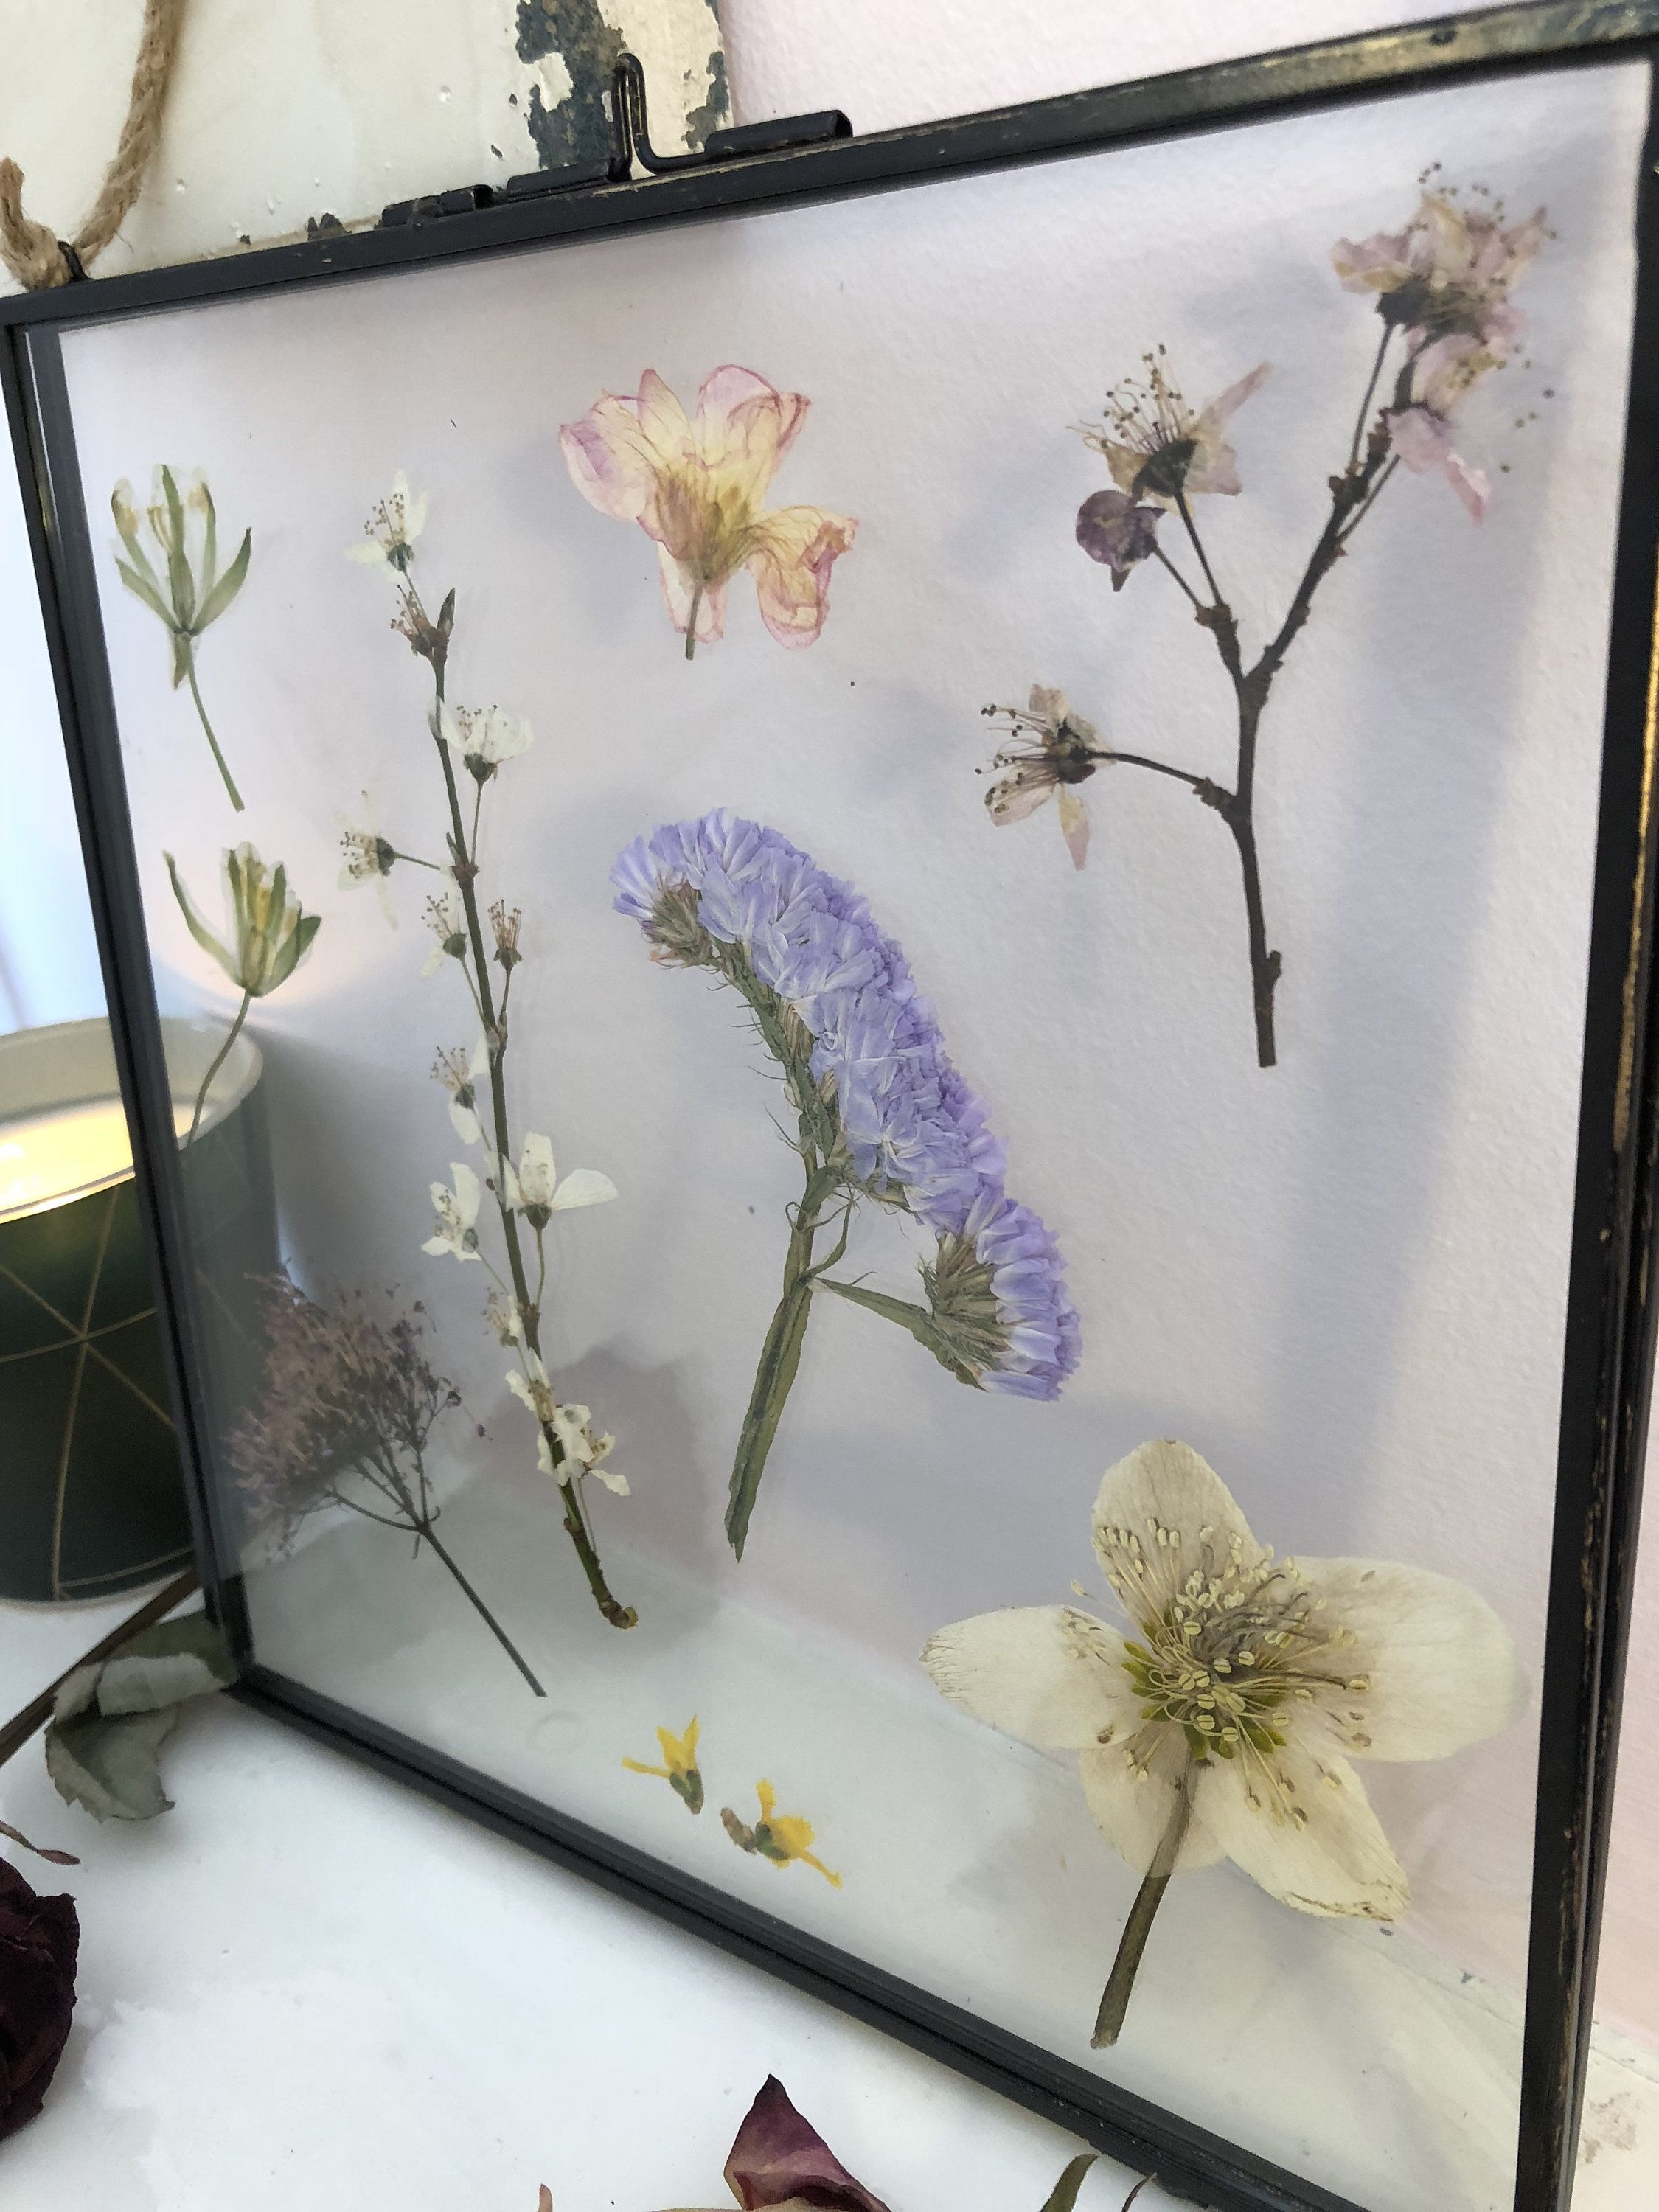 Decorative Pressed Flowers In Vintage Glass And Metal Frame Etsy Pressed Flowers Floral Gifts Hanging Frames